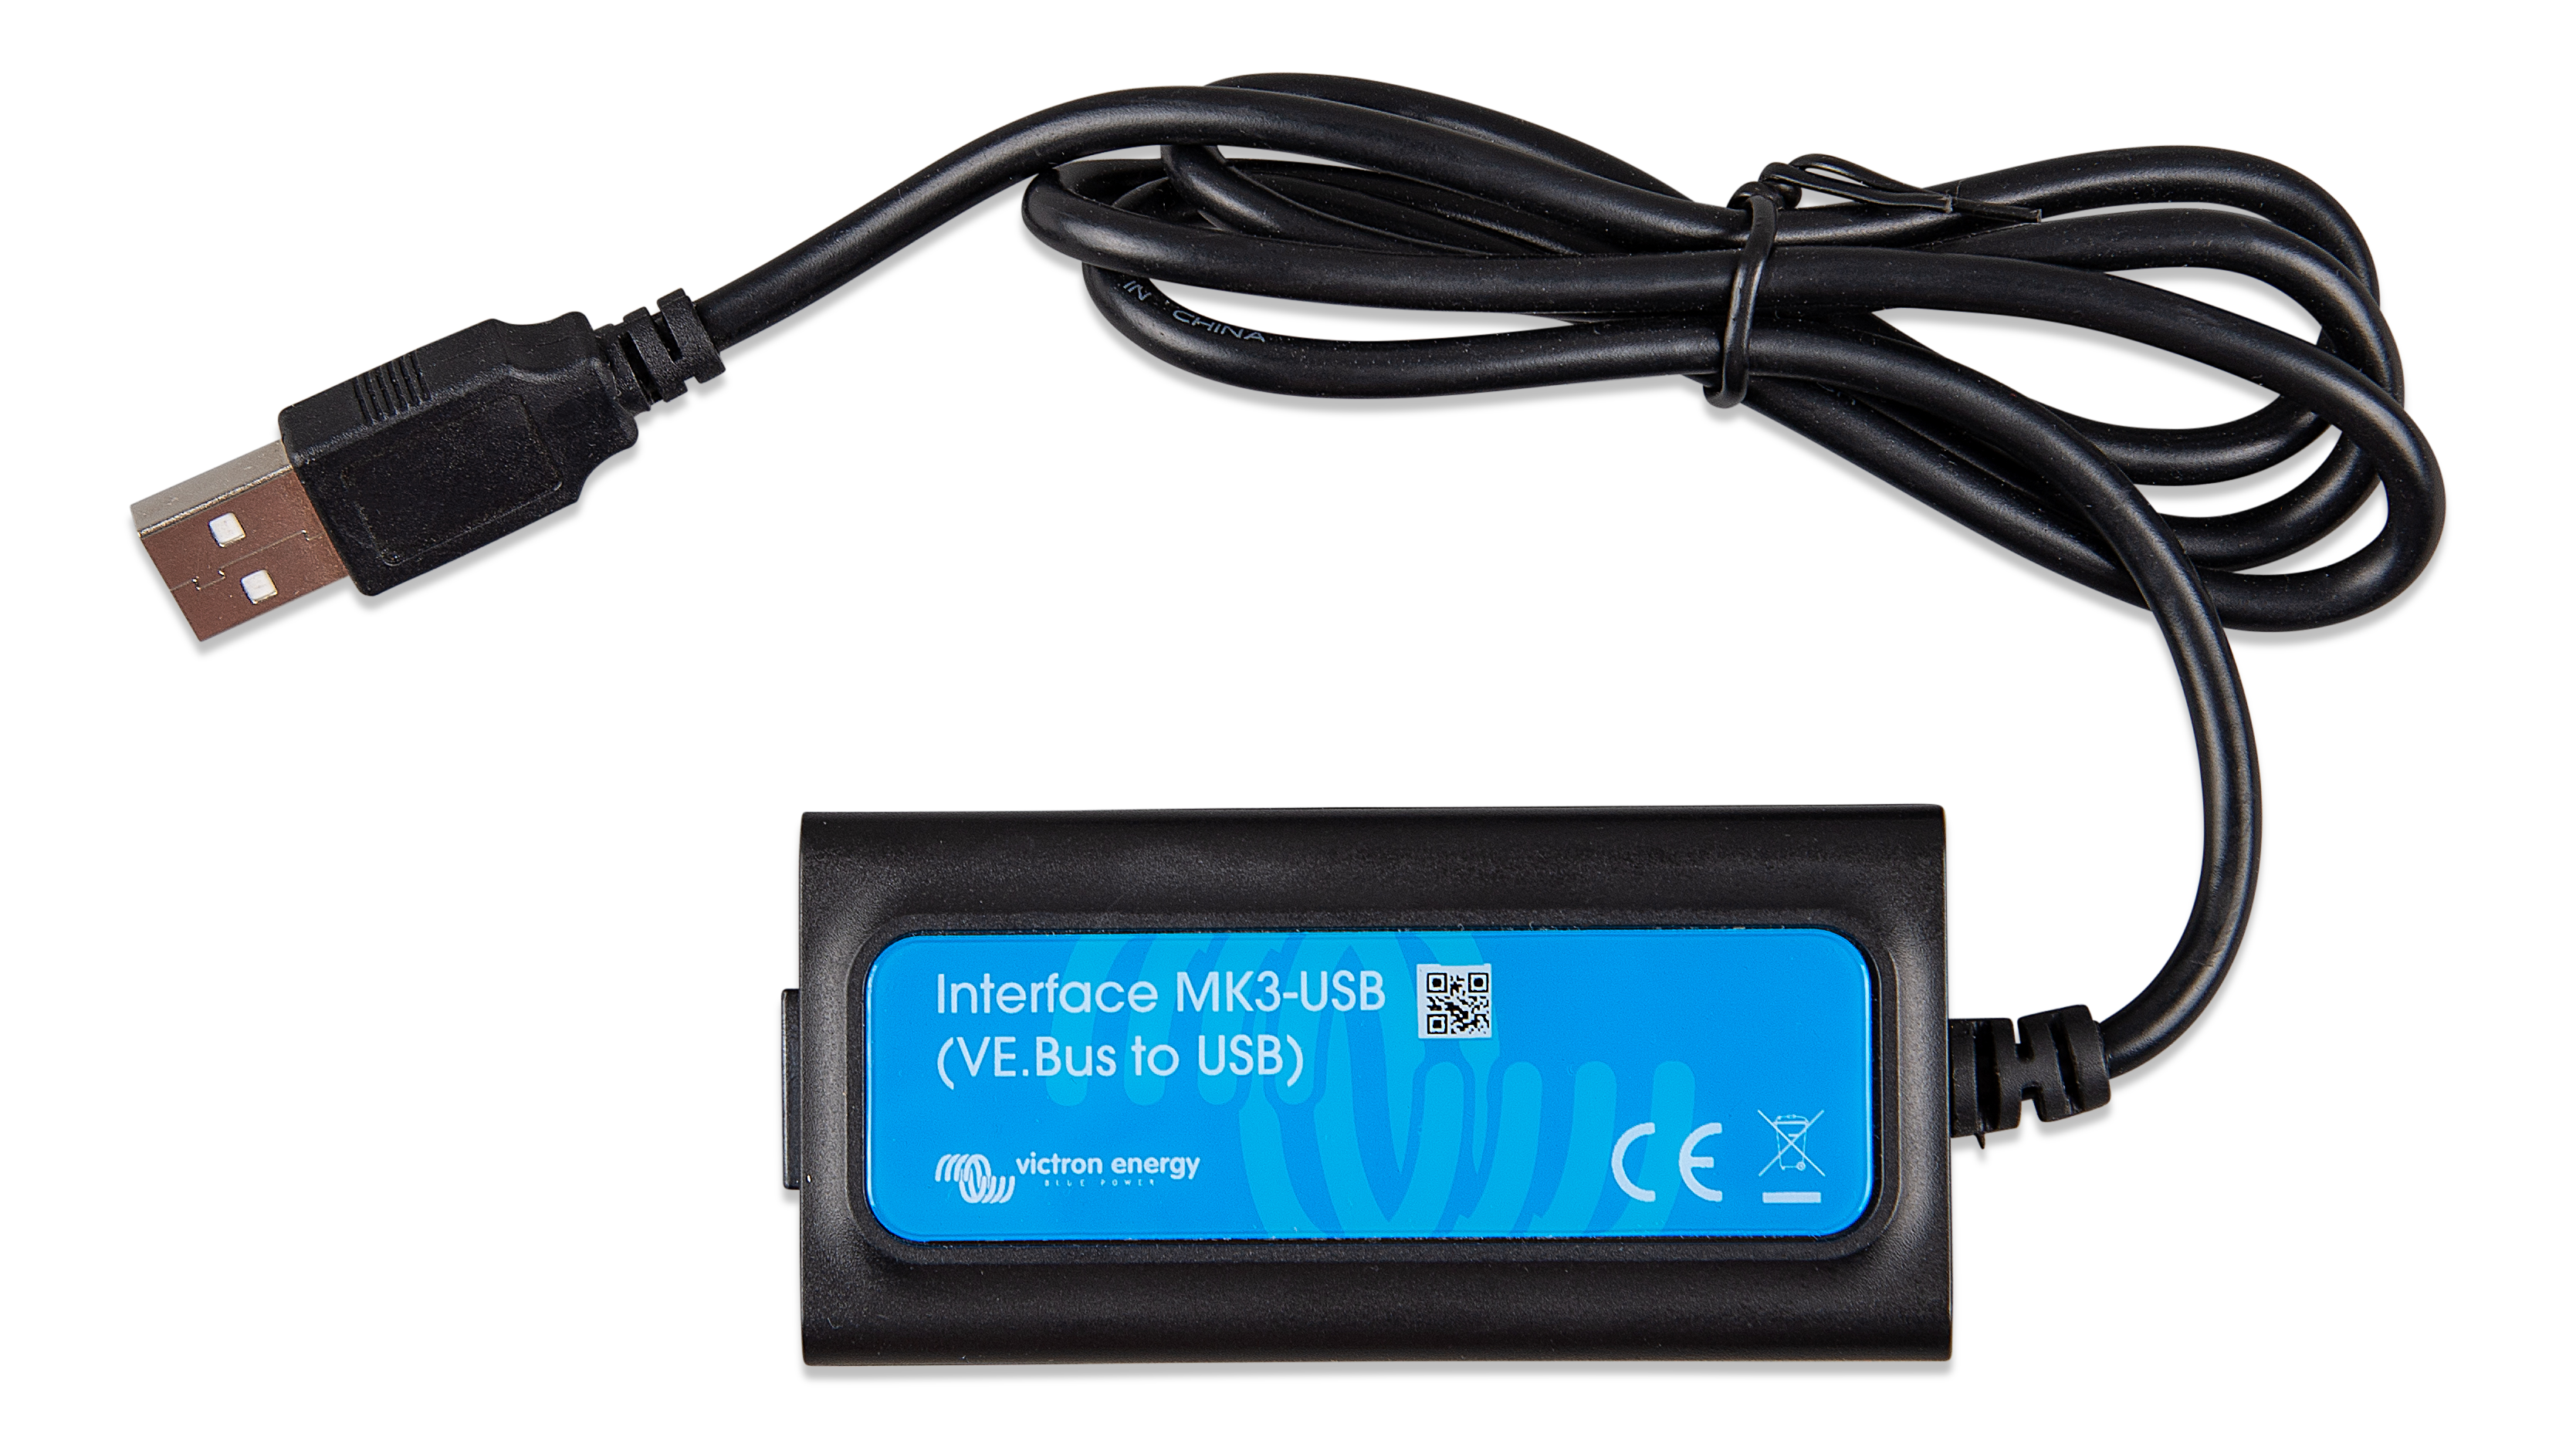 Interface MK3-USB (VE.Bus to USB) - [The Power Store]